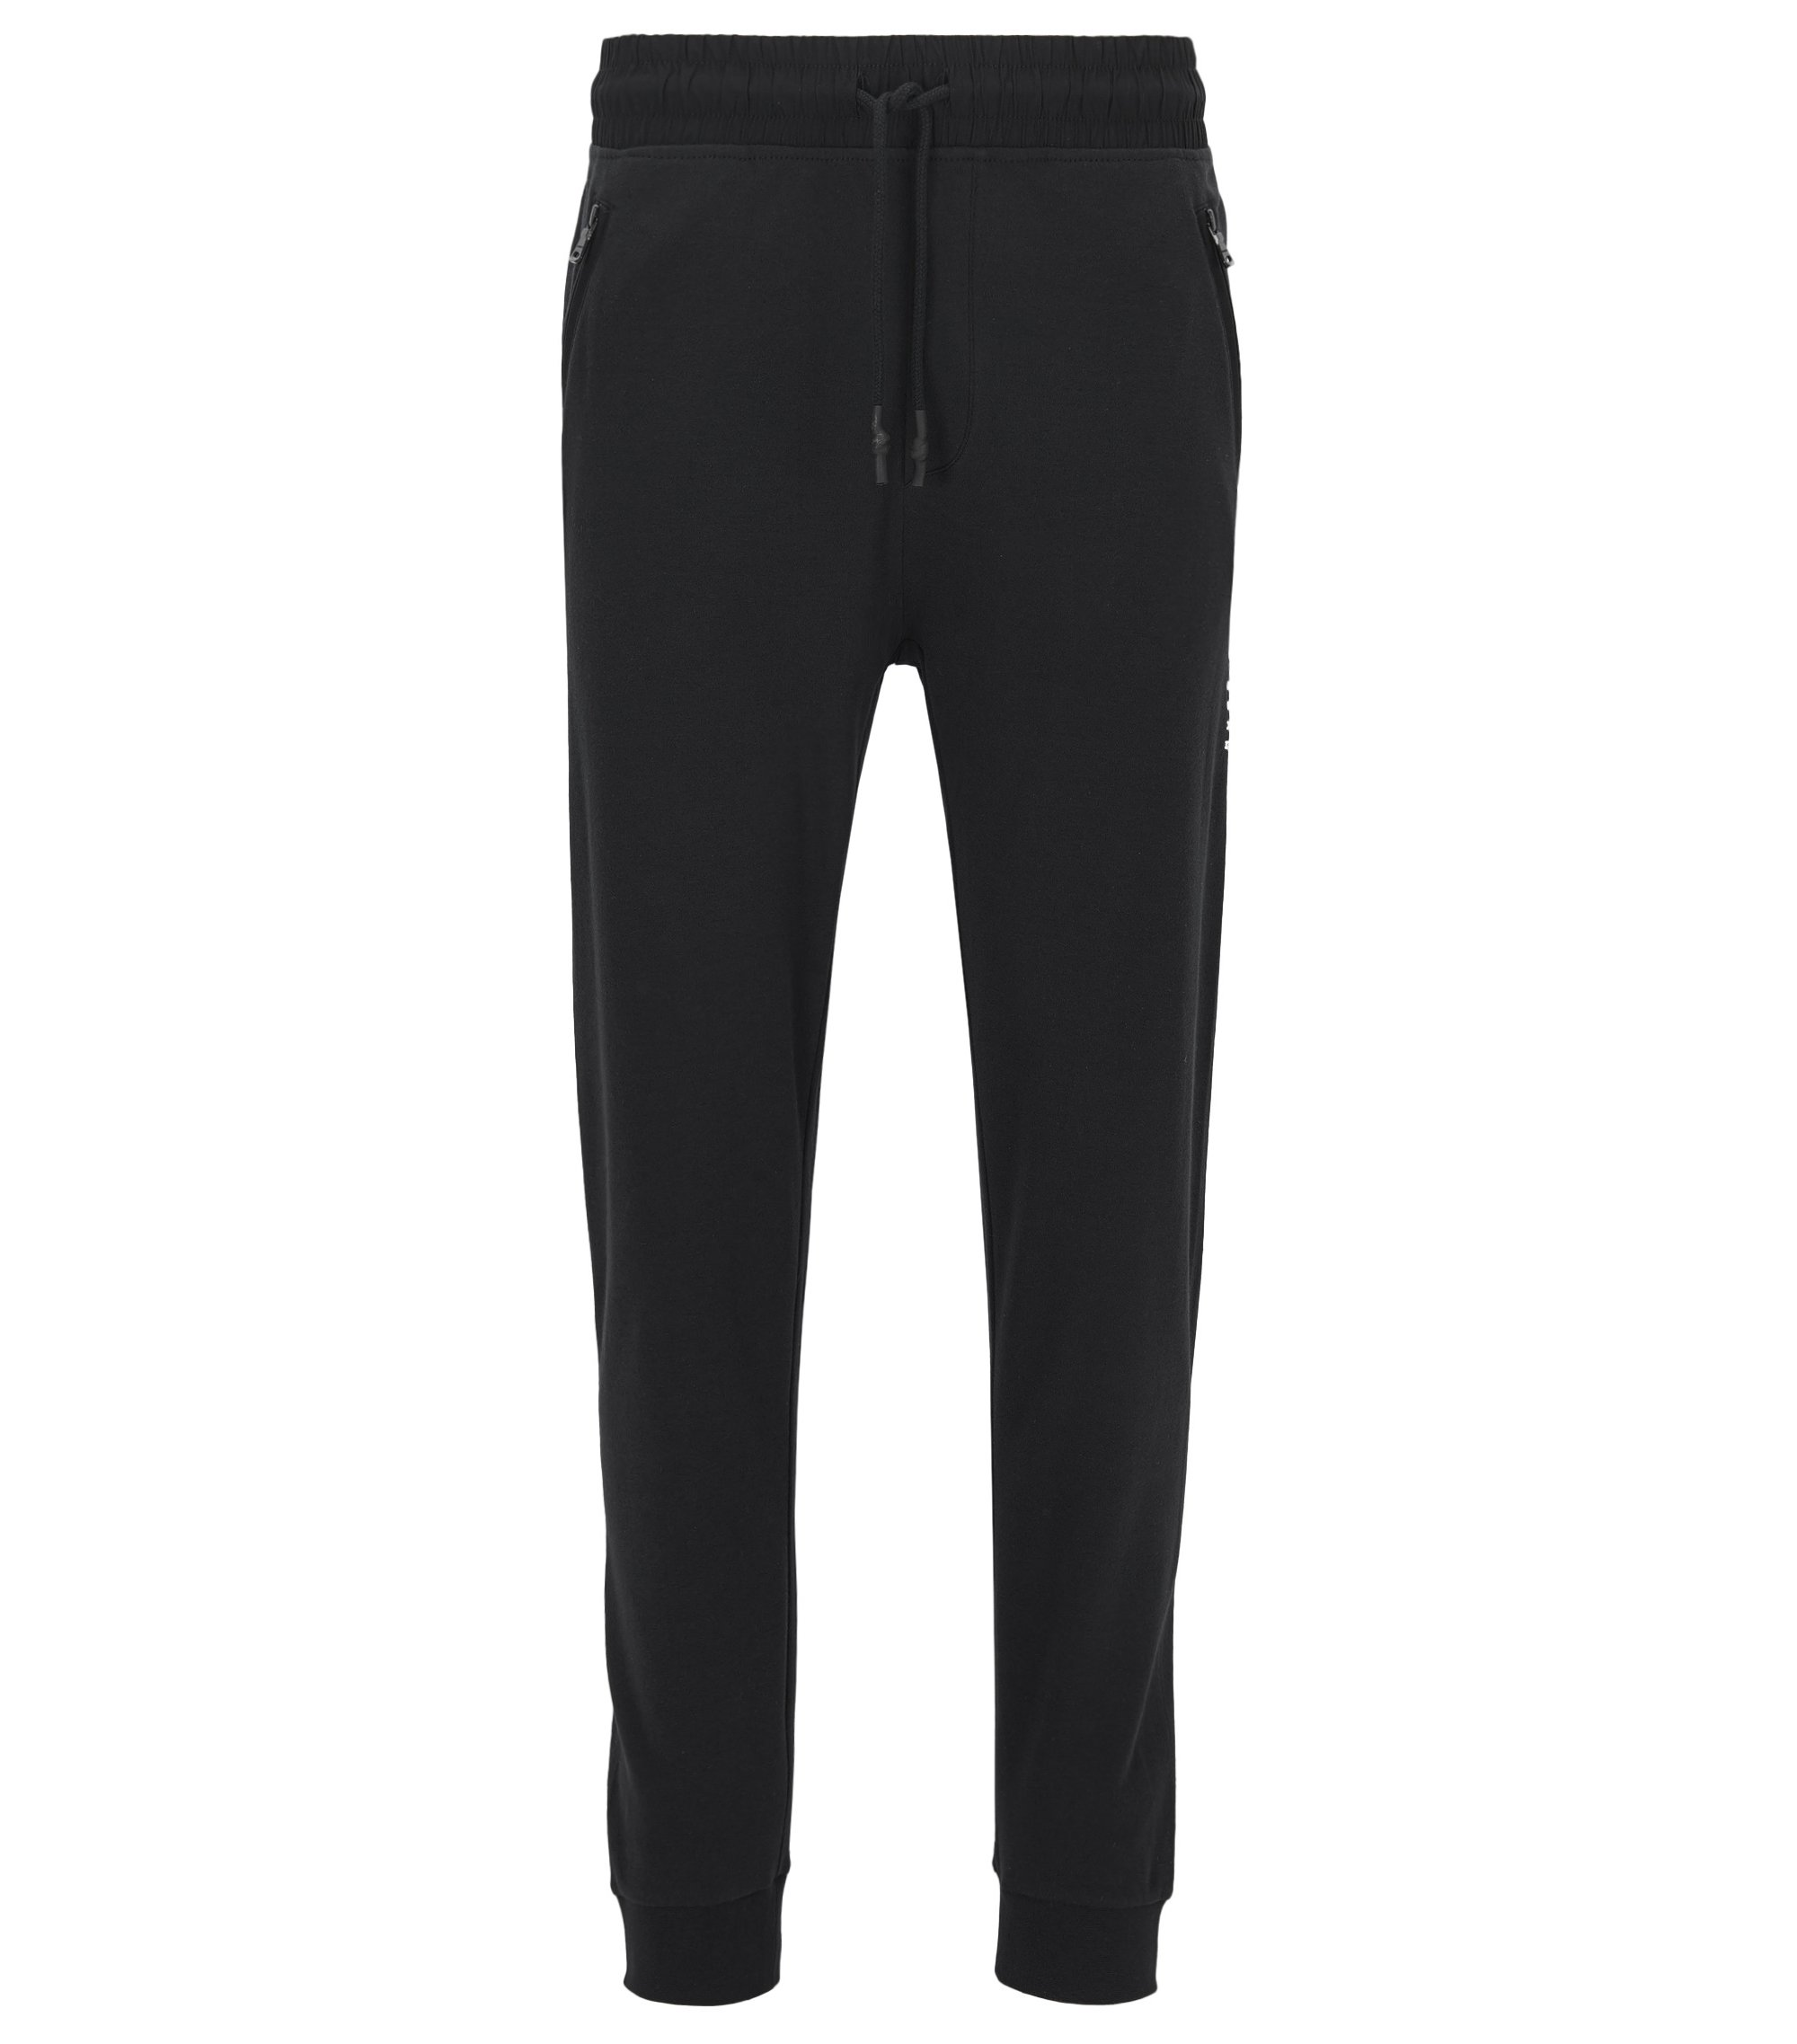 Cuffed loungewear trousers in interlock cotton, Black